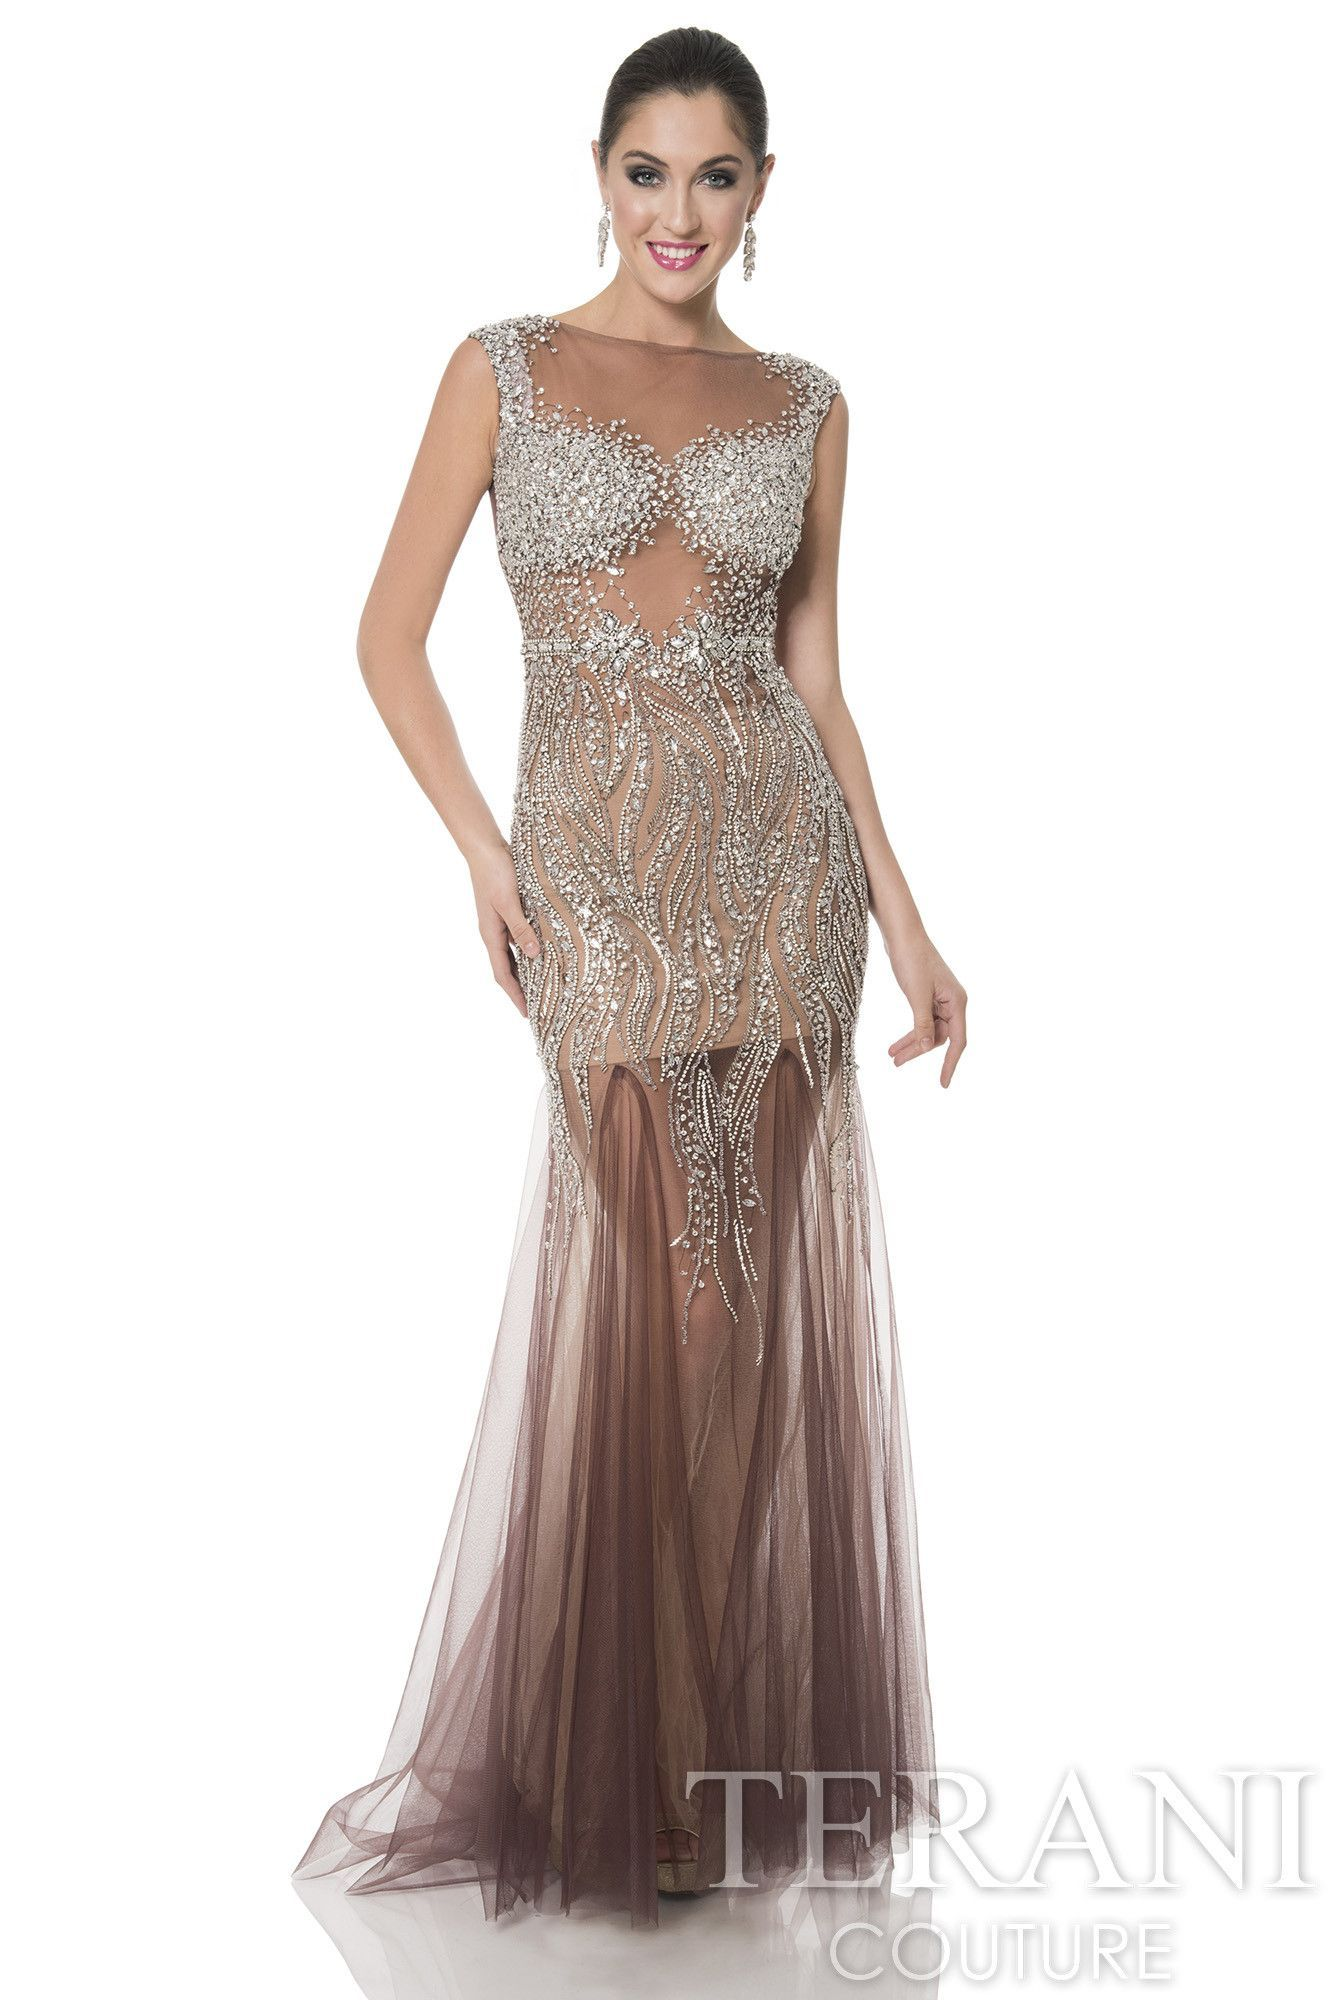 32df81bdac4 Dare to bare in this stunning evening dress from Terani 1611P0227. The  illusion bateau neckline bodice has bejeweled cap sleeves and shines with  dazzling ...